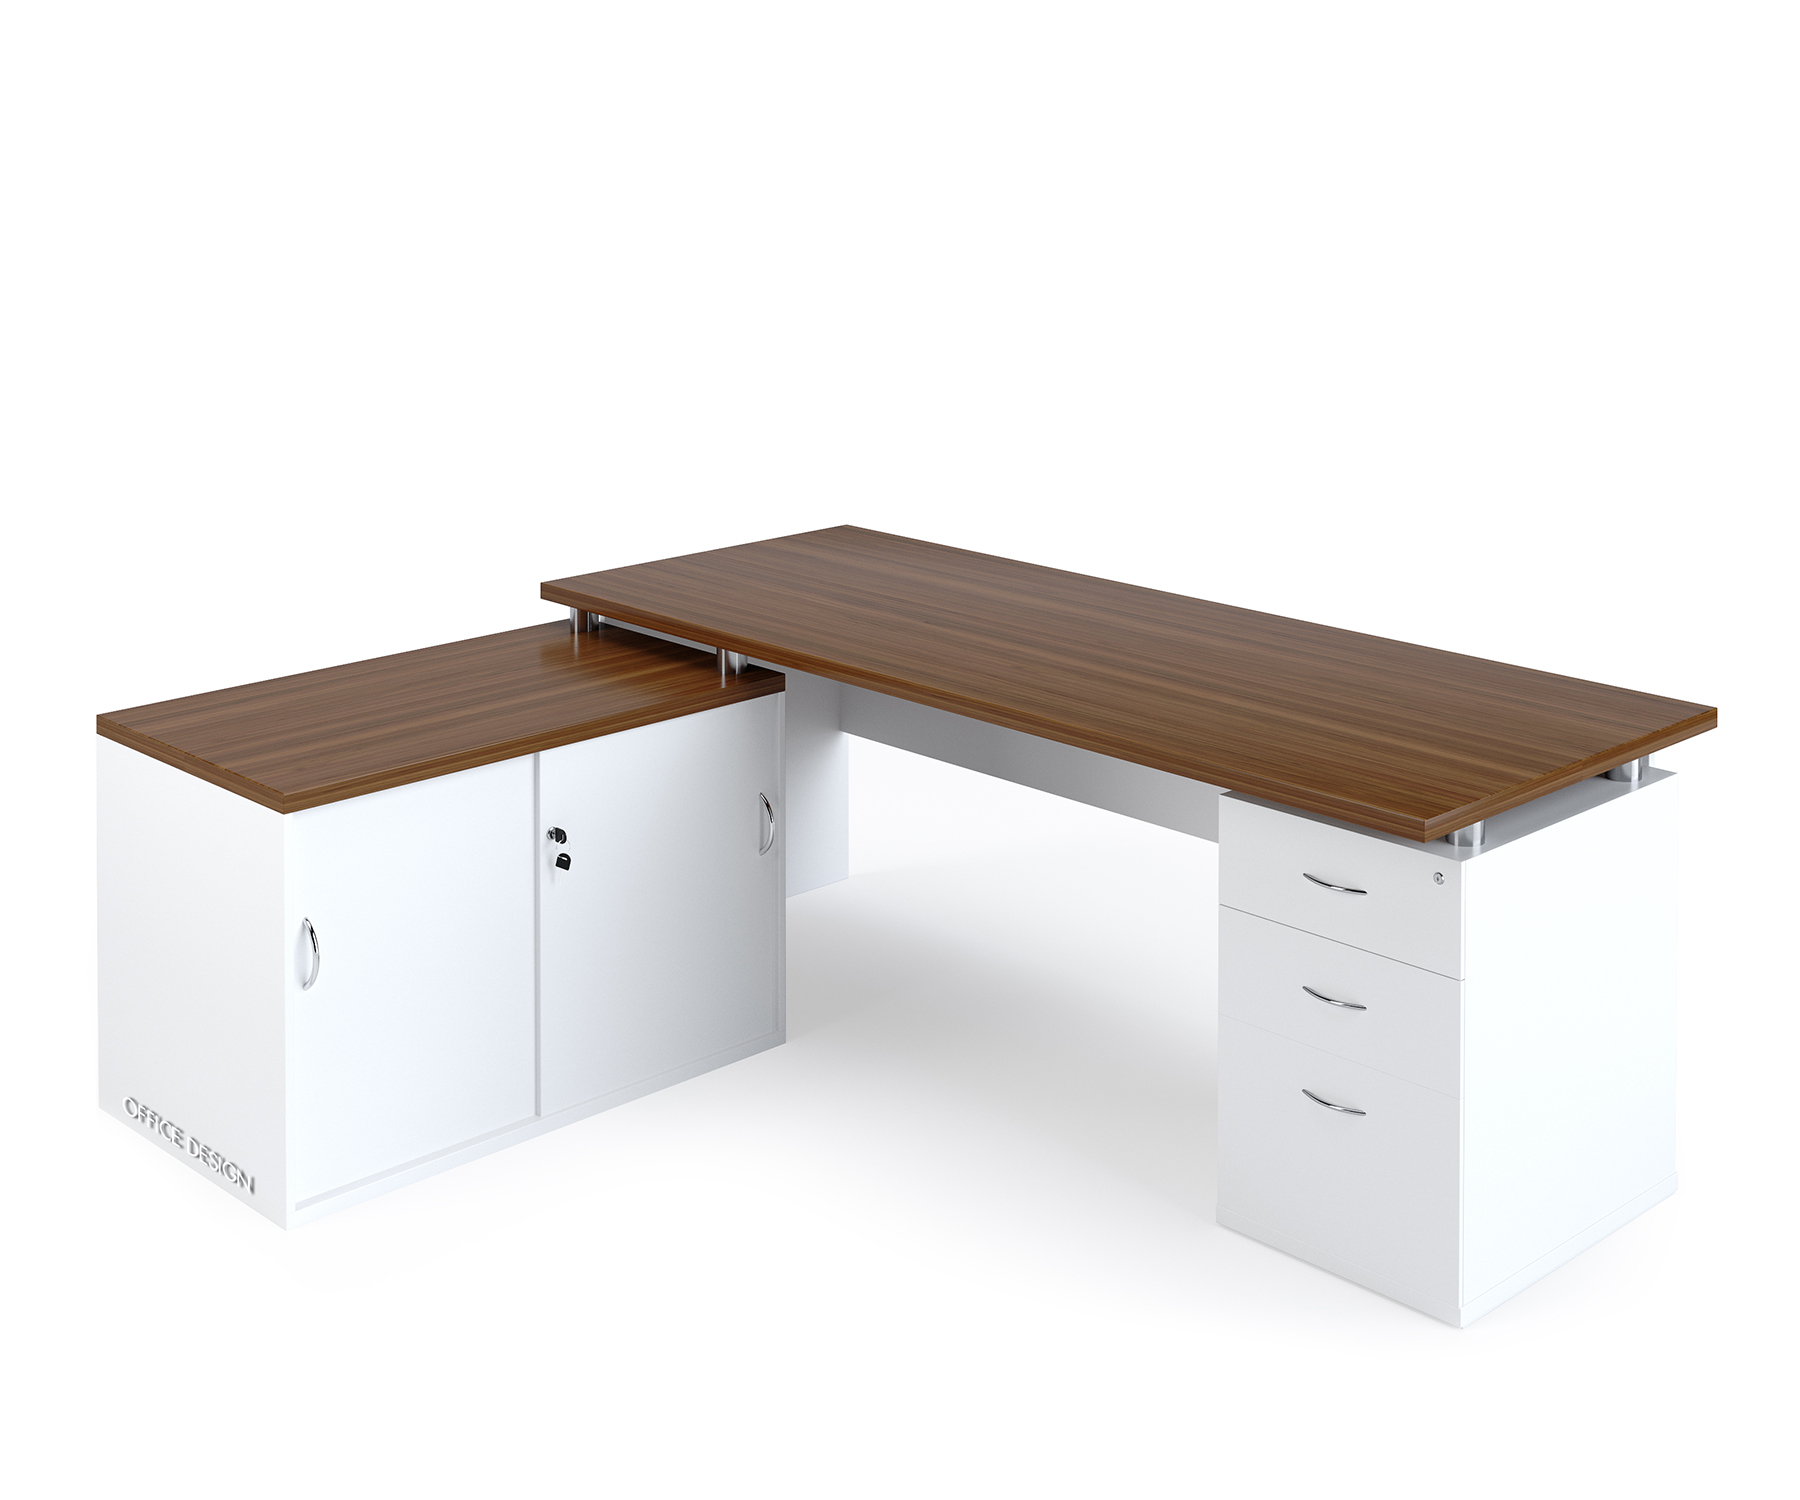 Office furniture design renderworx 3d visualisation cape for Office table 3d design